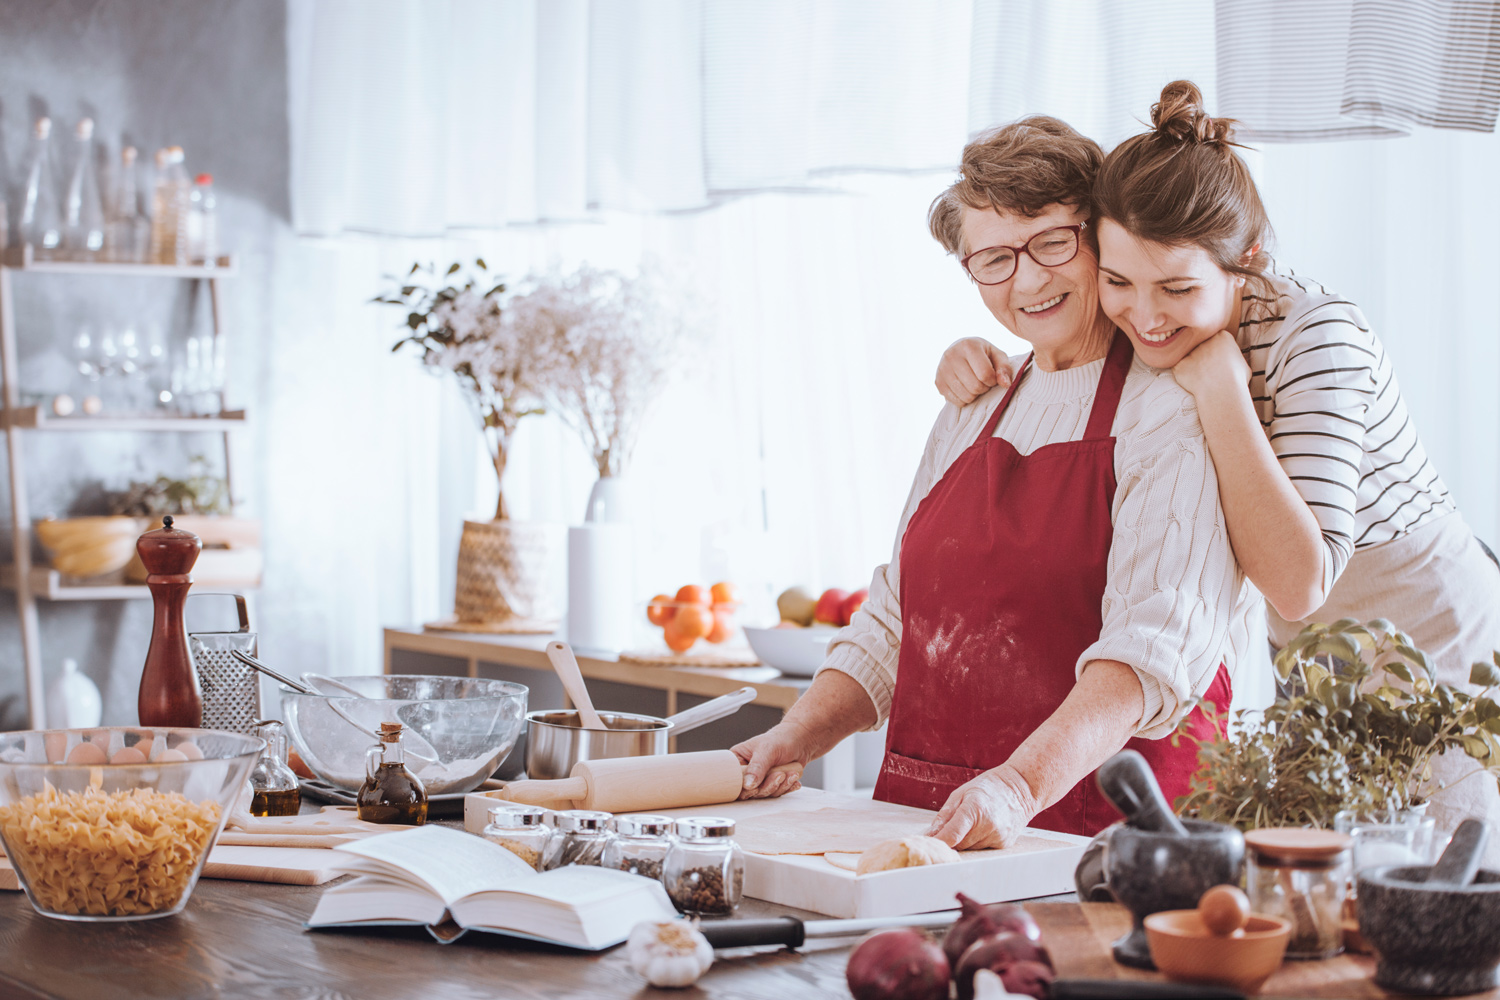 Mom-and-daughter-cooking-together-happy-in-the-kitchen.jpg